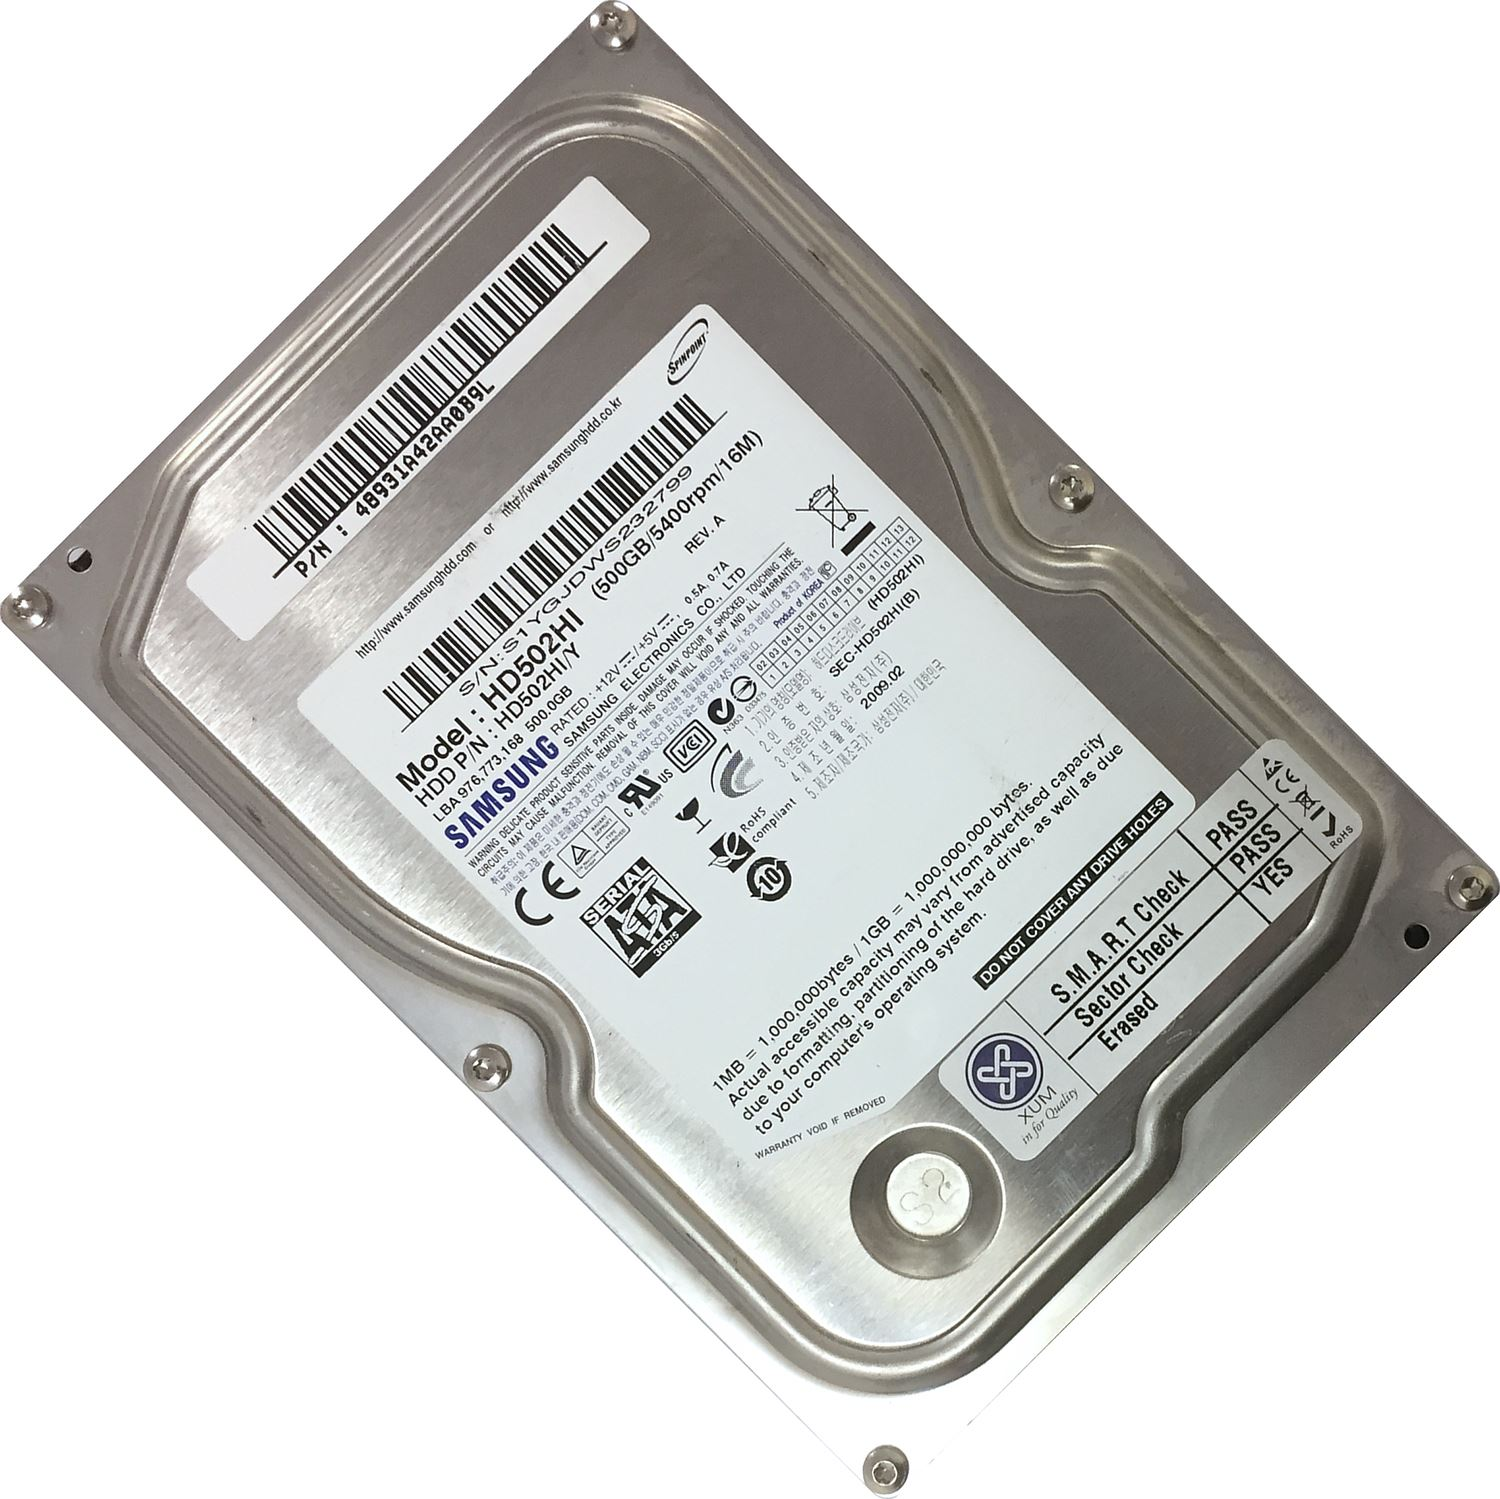 500GB-3-5-034-SATA-Hard-Drive-Internal-HDD-DESKTOP-COMPUTER-PC-CCTV-DVR-DISK-LOT miniatuur 6